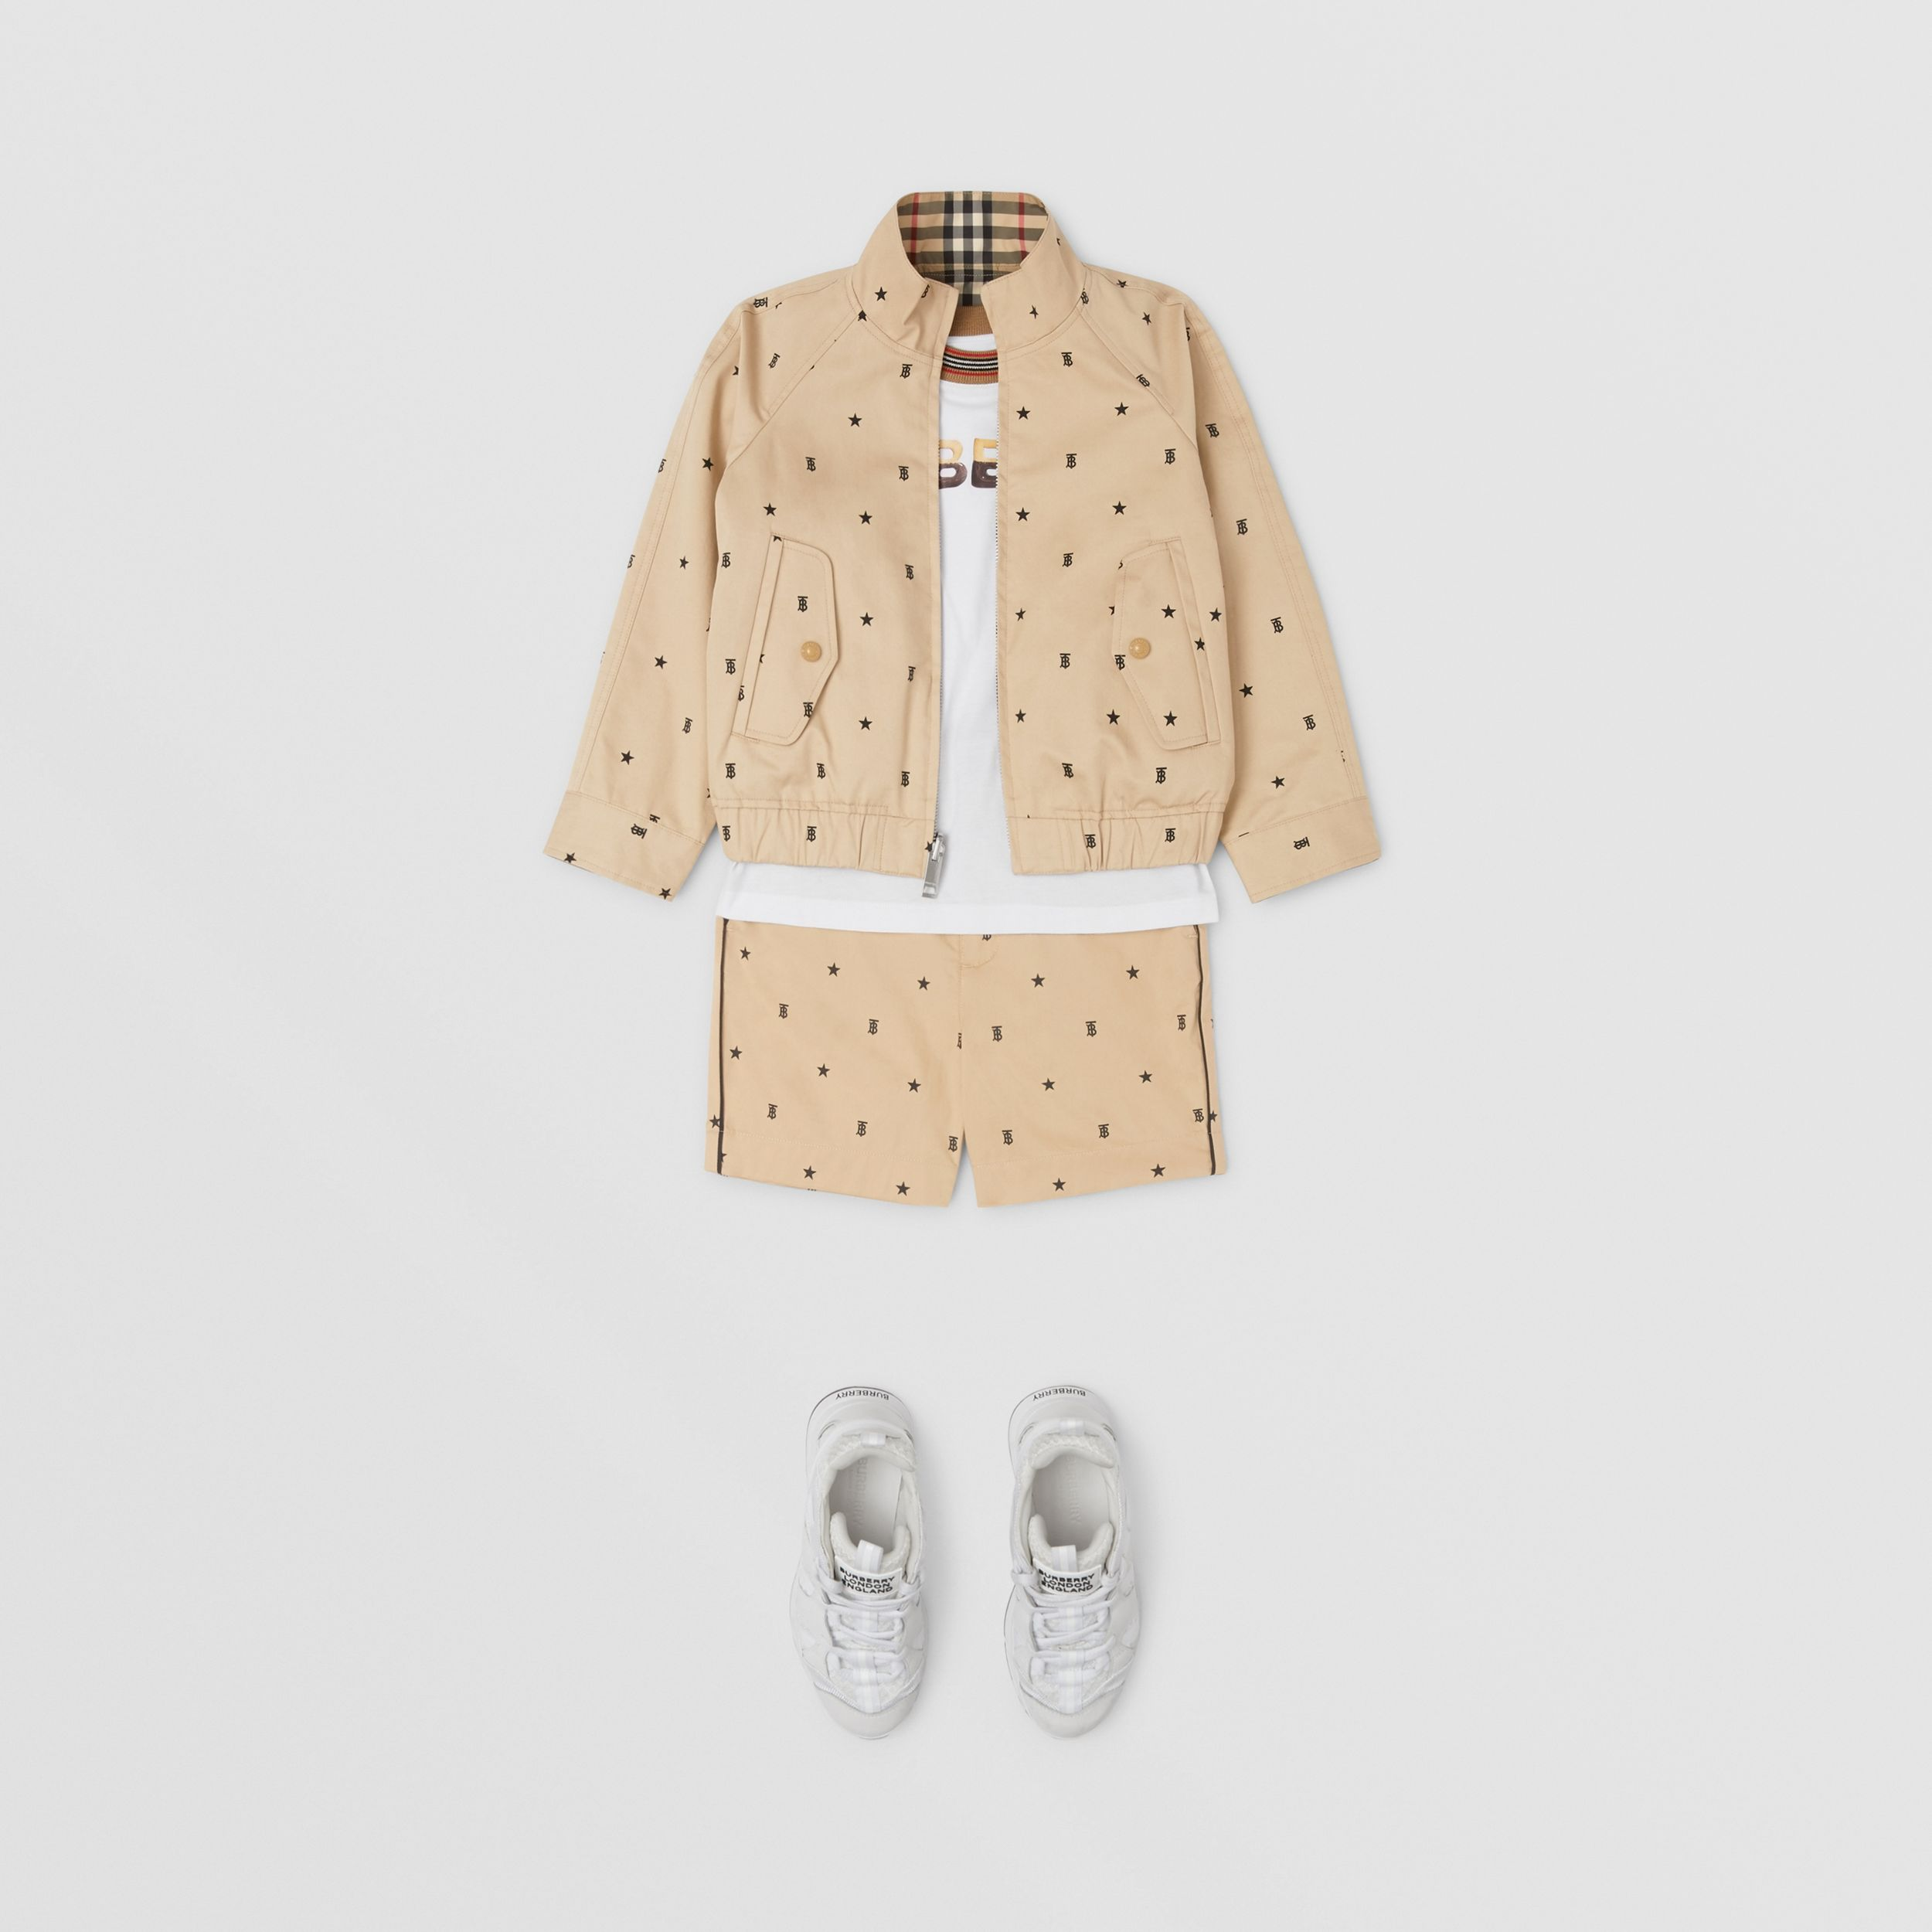 Reversible Star and Monogram Motif Cotton Jacket in Sand | Burberry - 3